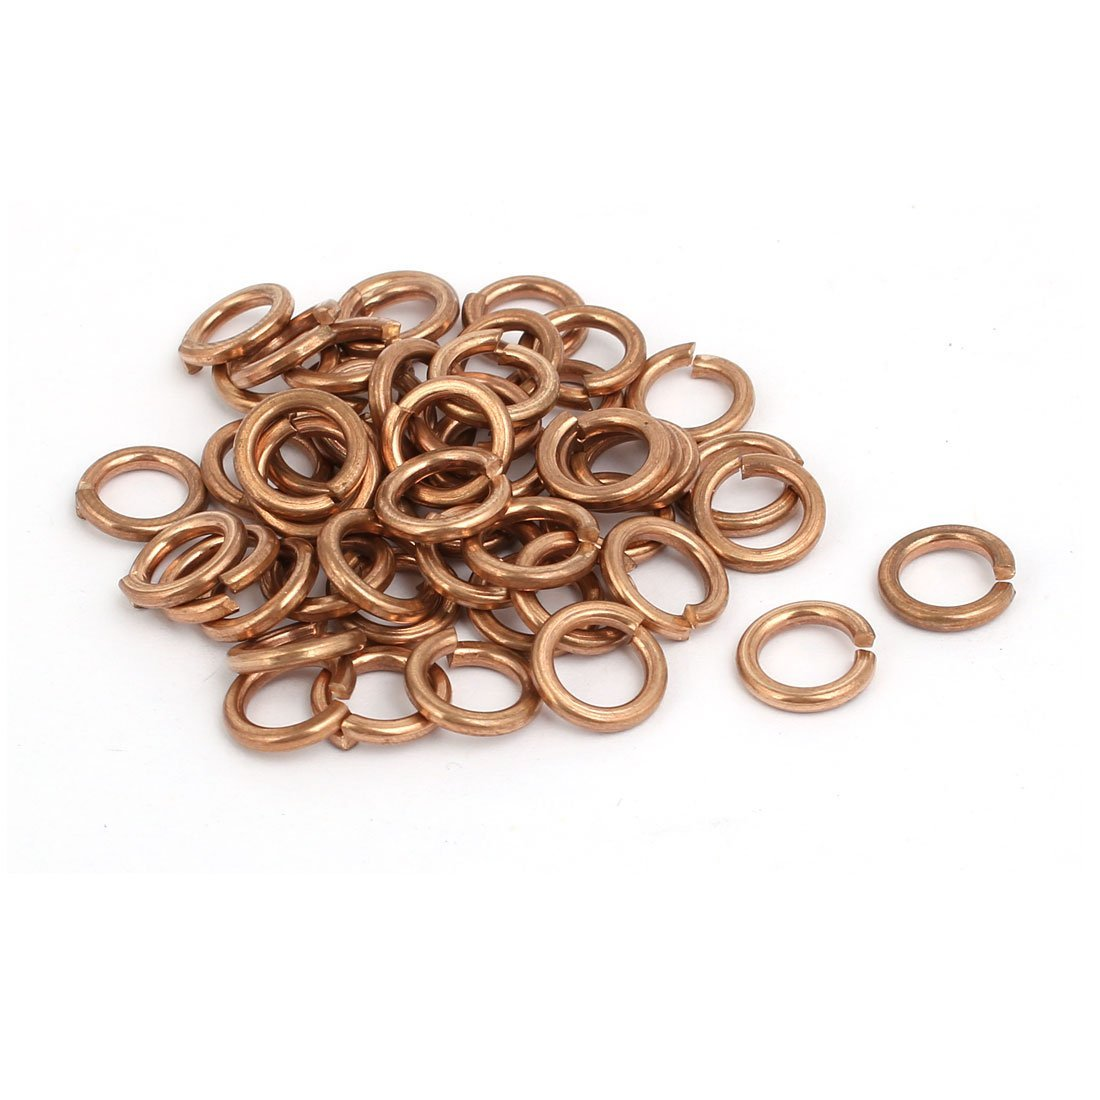 uxcell 6mm Inner Diameter Split Lock Spring Washer Gasket Copper Tone 50pcs